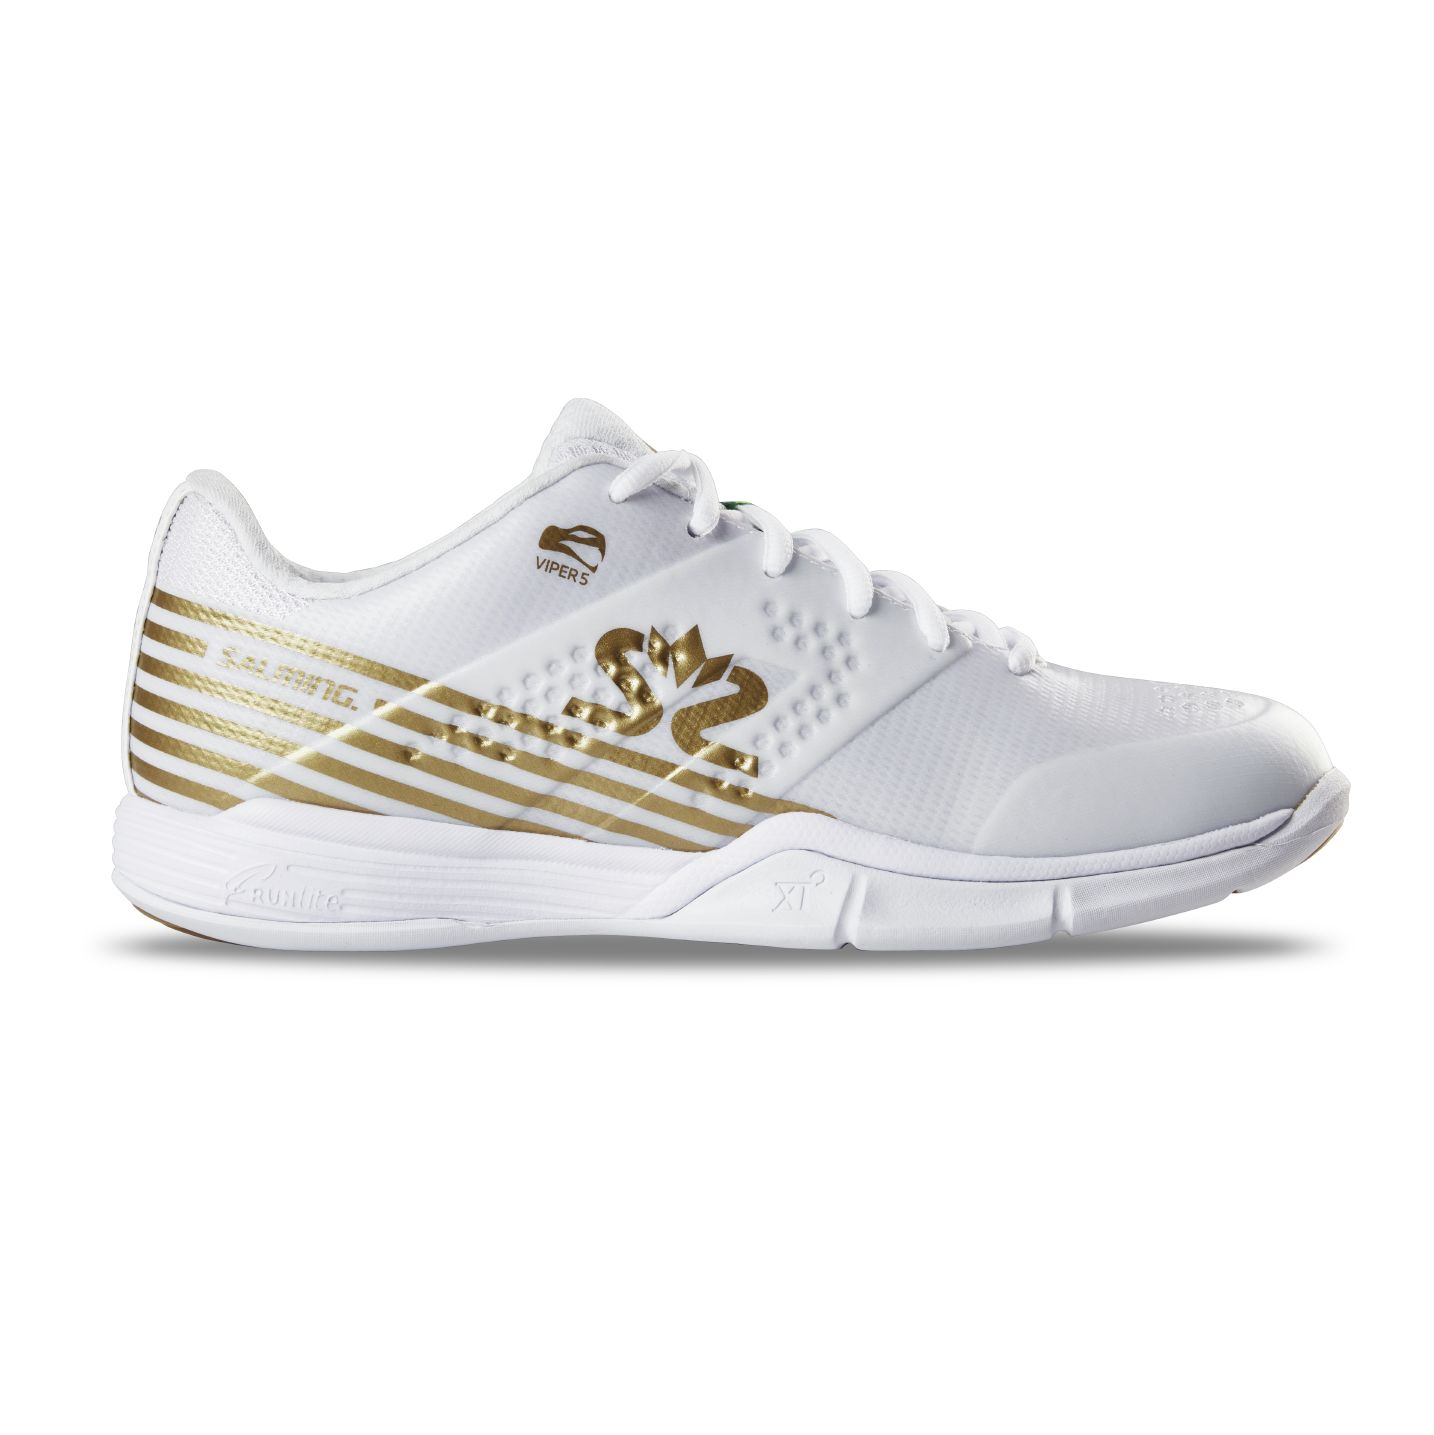 Salming Viper 5 Shoe Women White/Gold 8 UK - 42 EUR - 27 cm